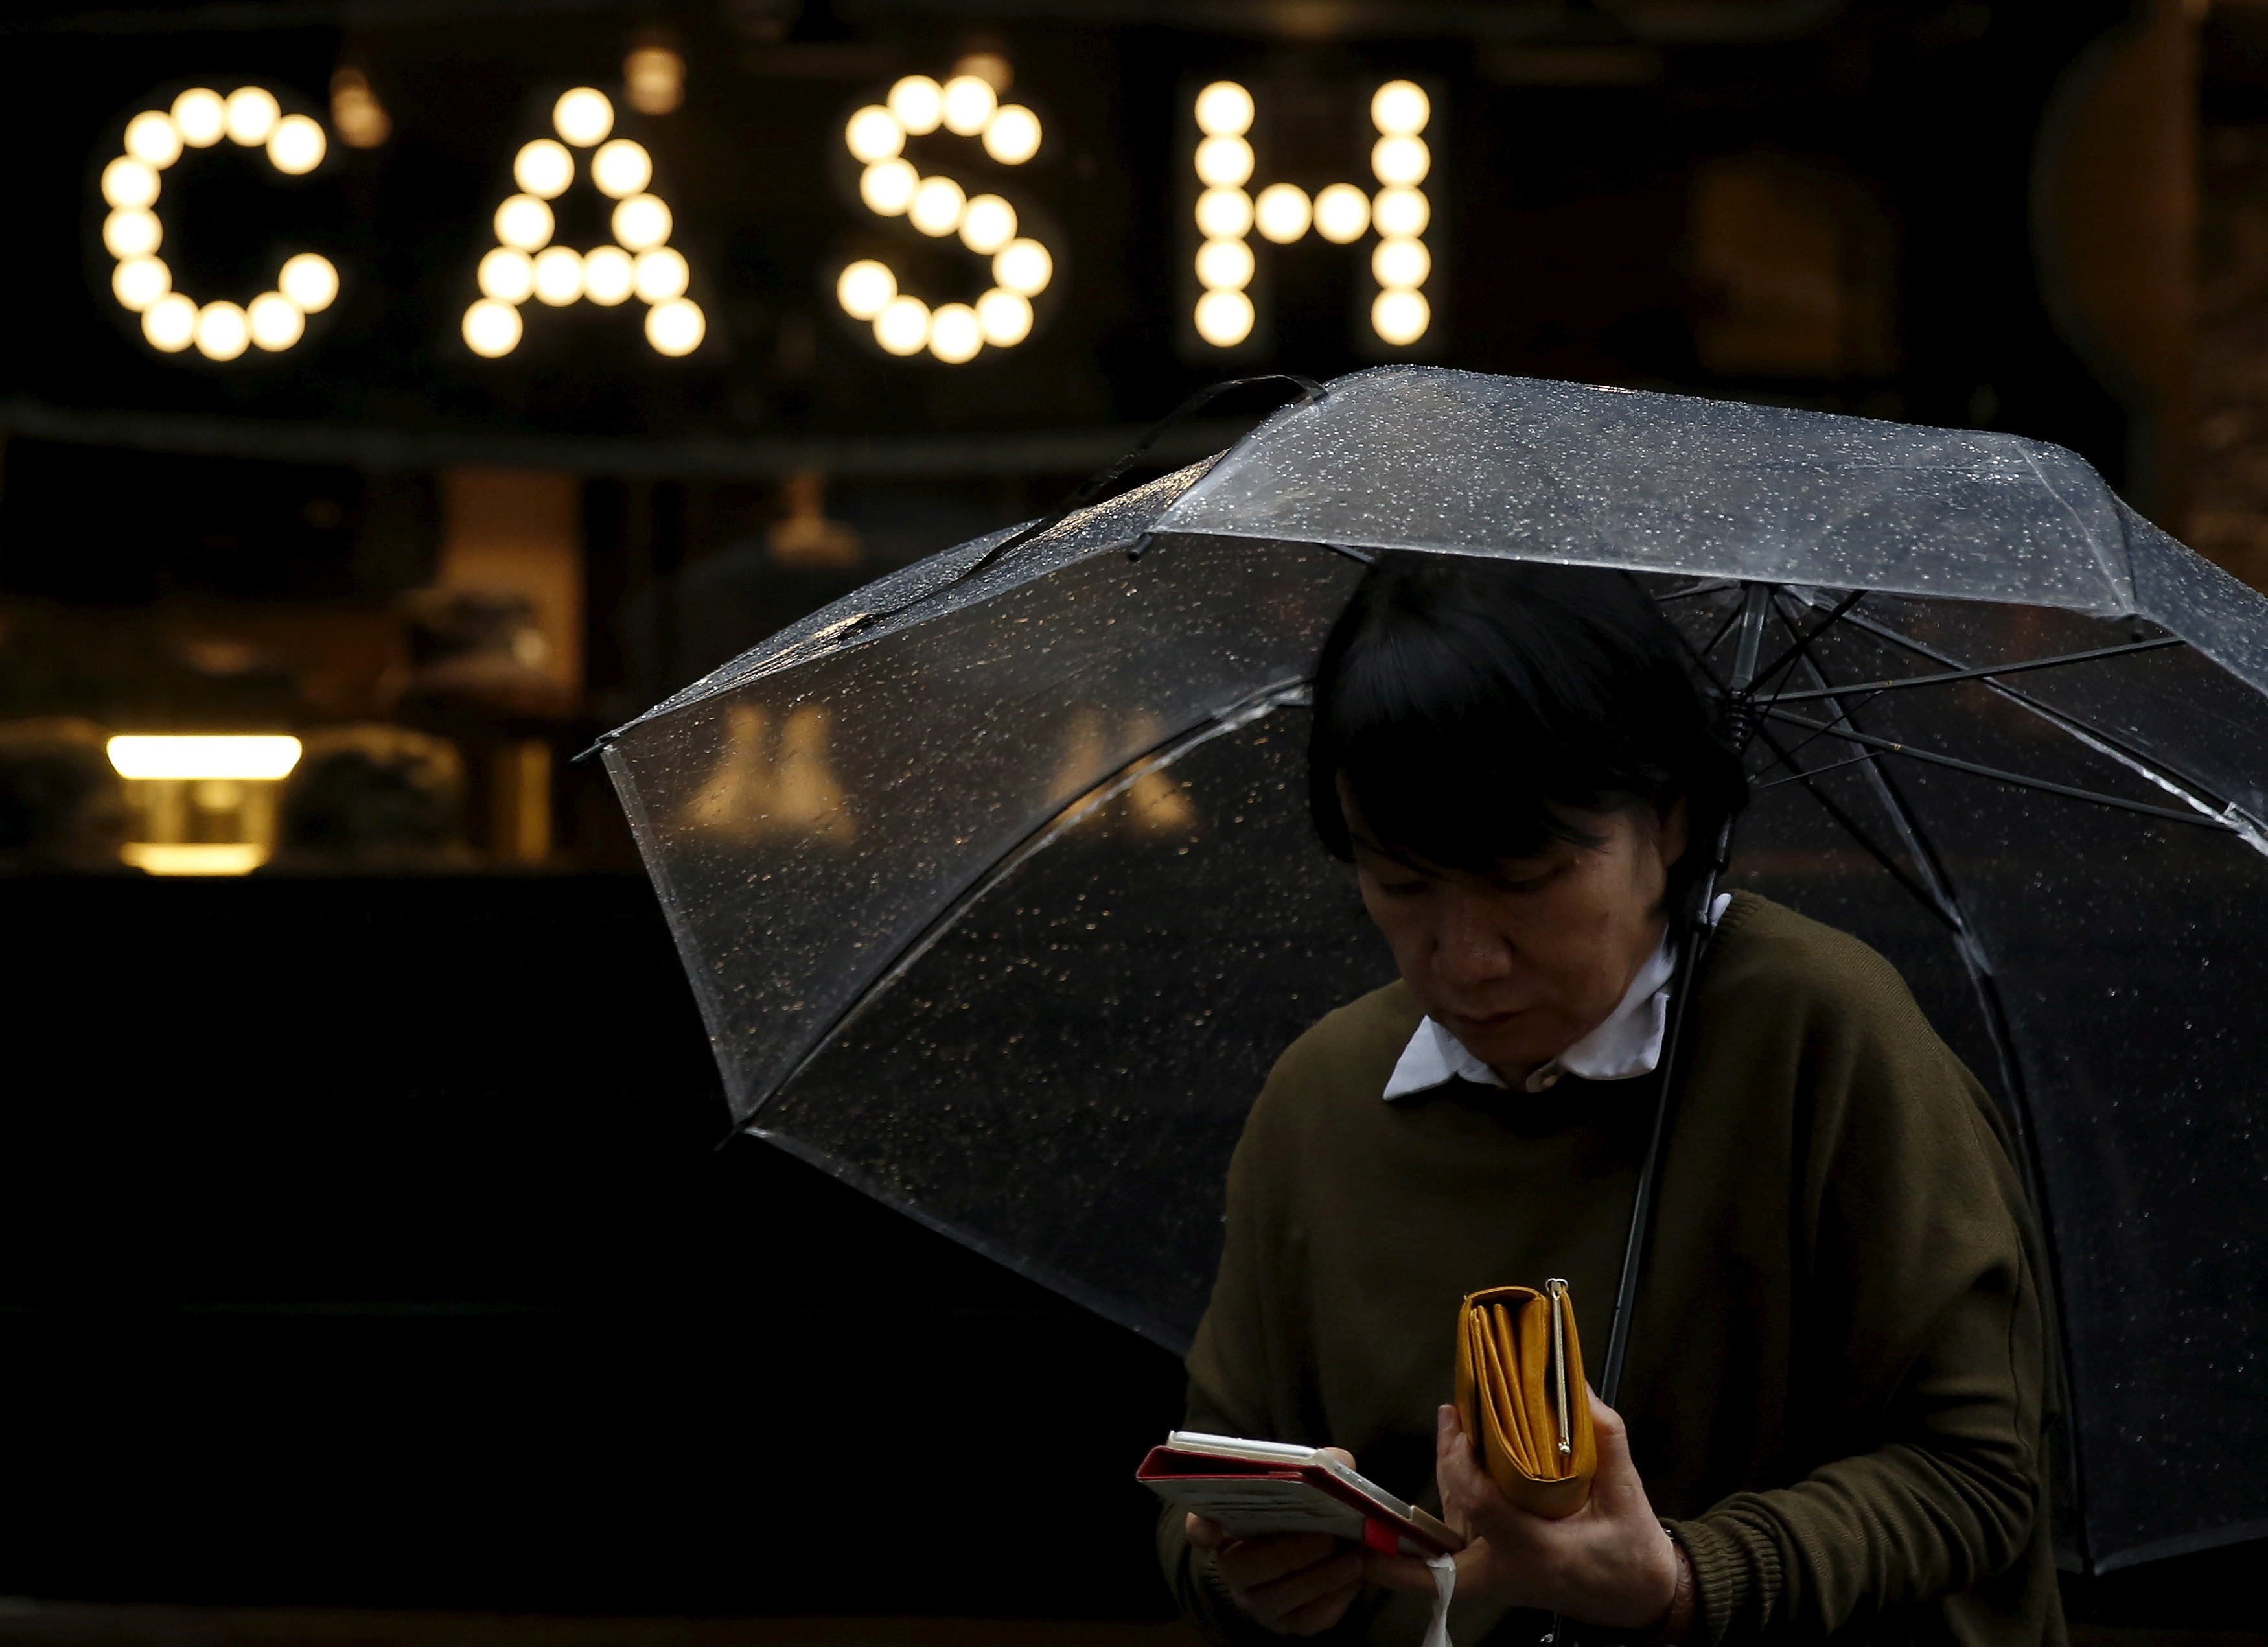 """A pedestrian holding an umbrella and her wallet walks past the word """"CASH"""", part of a sign on a street at a shopping district in Tokyo, Japan, March 7, 2016.  REUTERS/Yuya Shino/File Photo                                   GLOBAL BUSINESS WEEK AHEAD PACKAGE Ð SEARCH ÒBUSINESS WEEK AHEAD 3 OCTÓ FOR ALL IMAGES - S1BEUETMAOAA"""